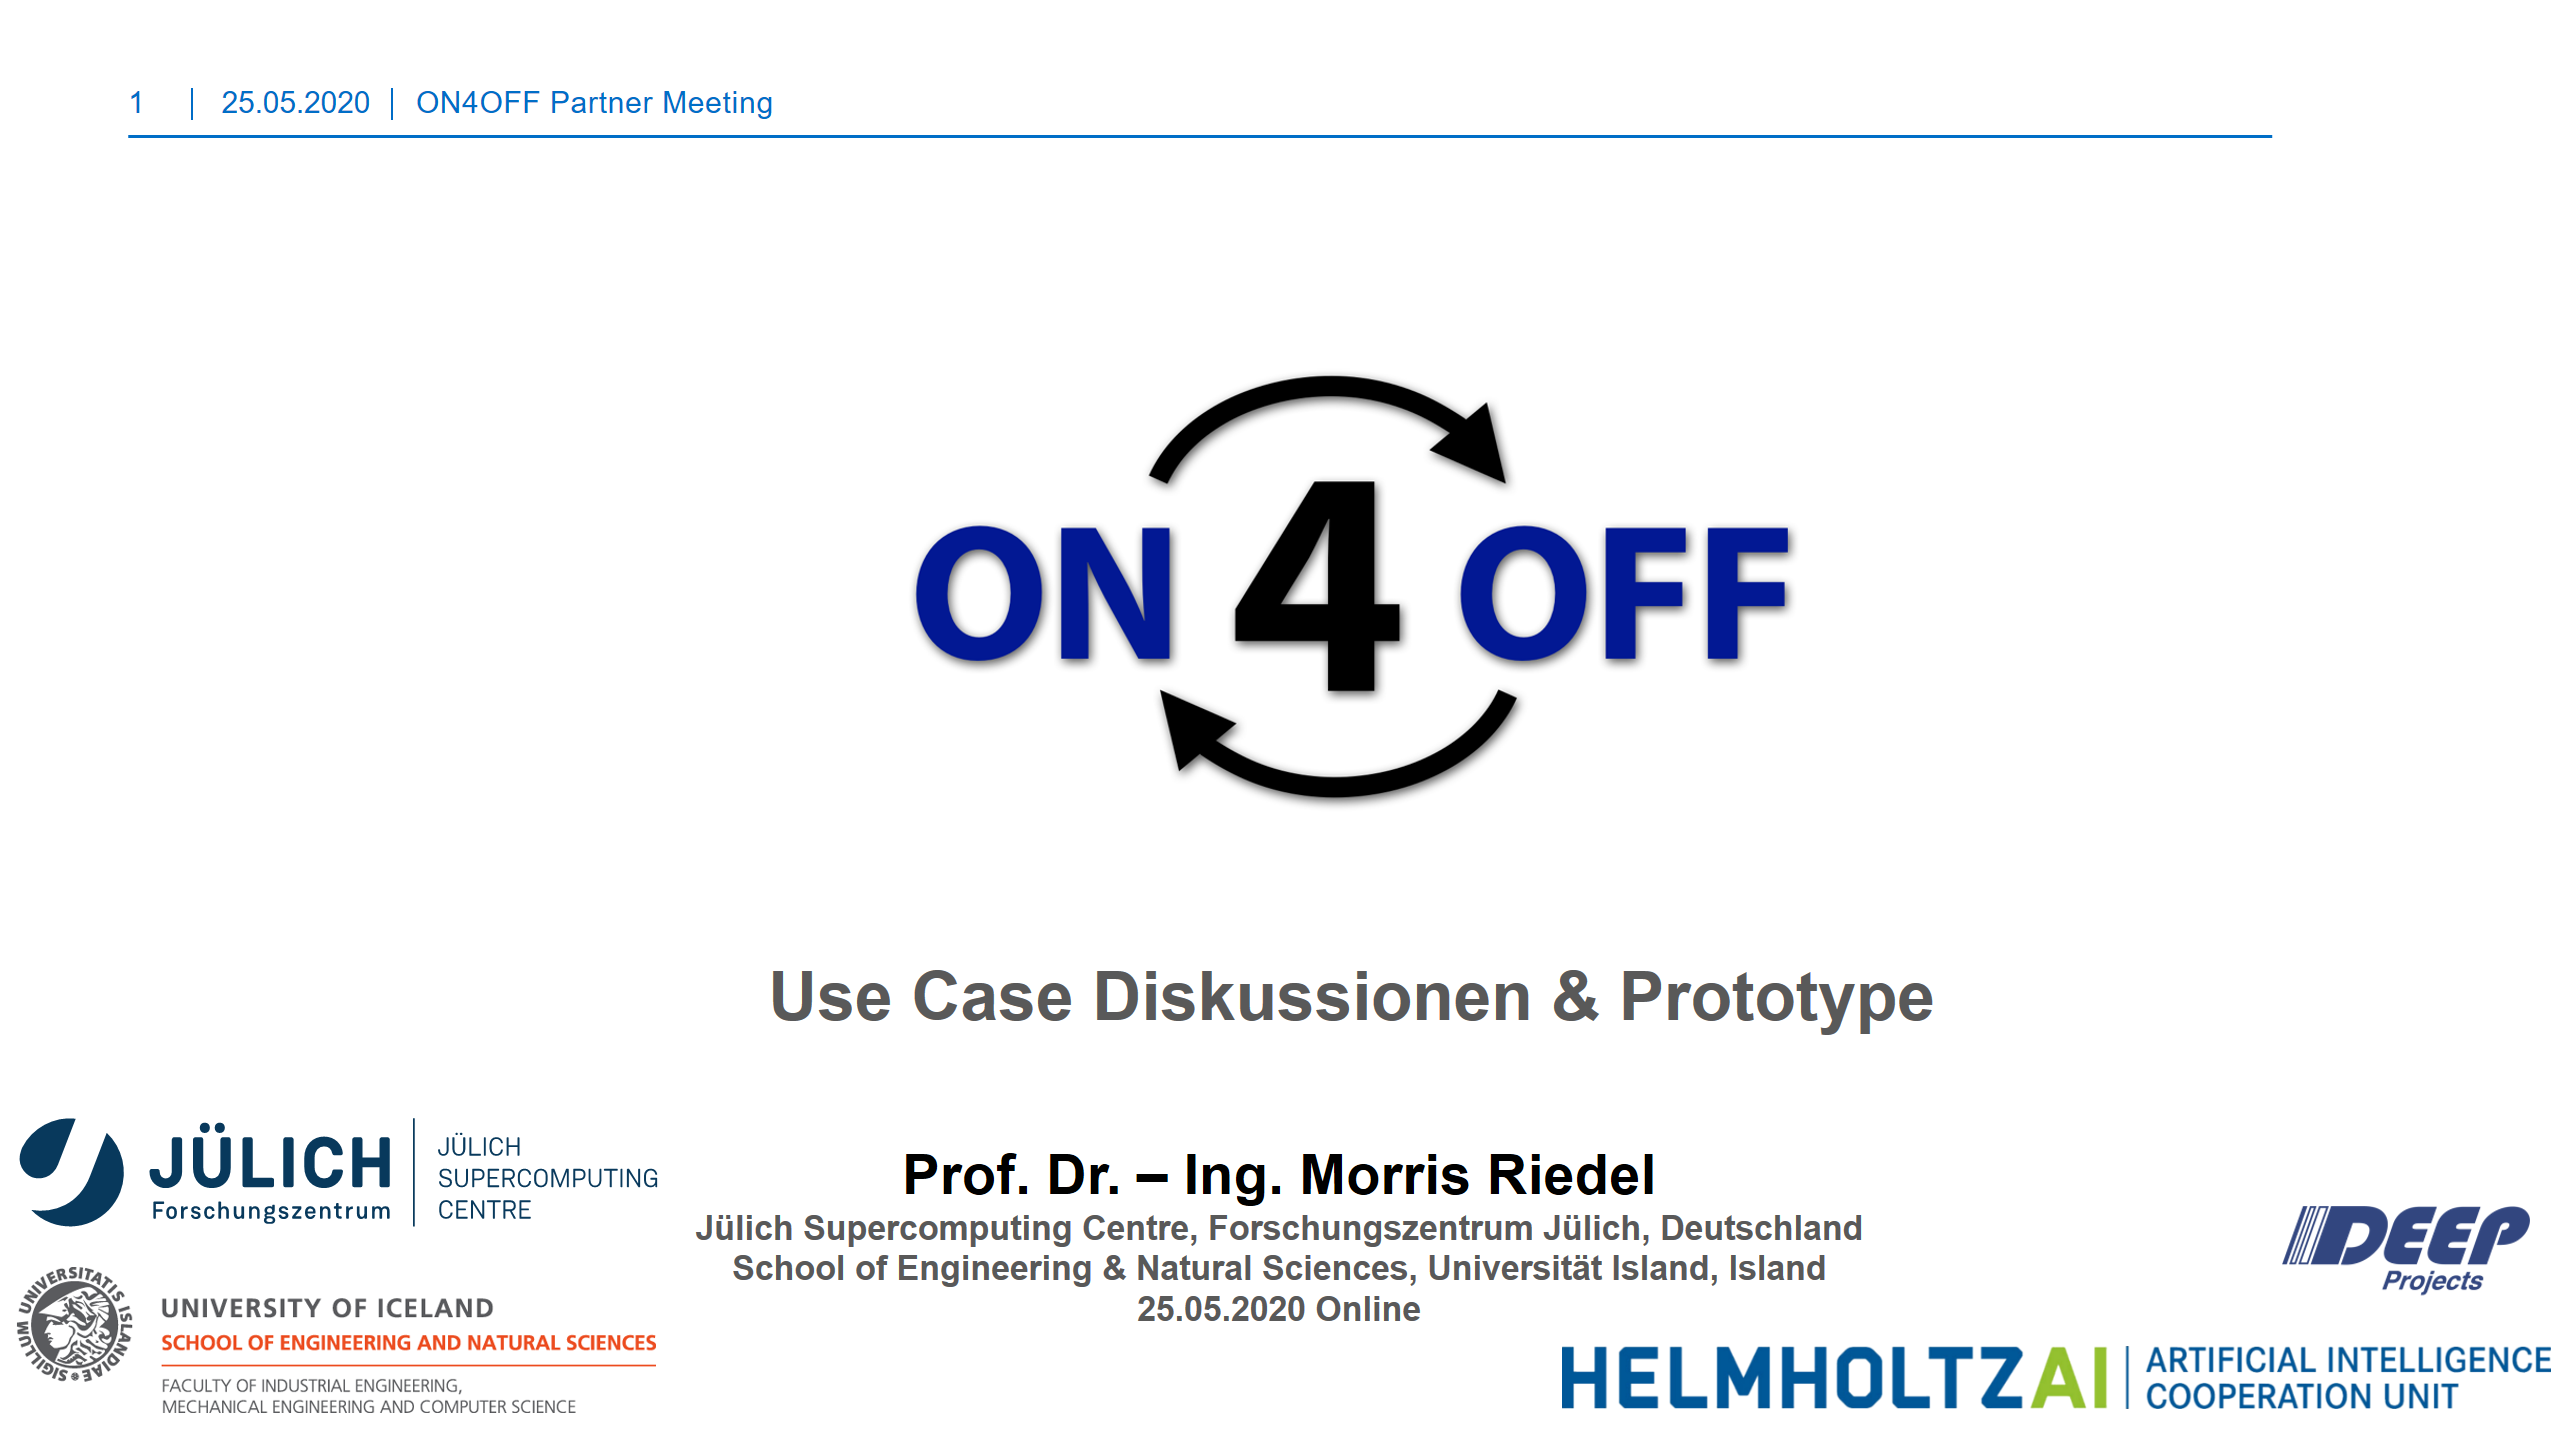 ON4OFF Use Case Diskussionen und Prototype Morris Riedel